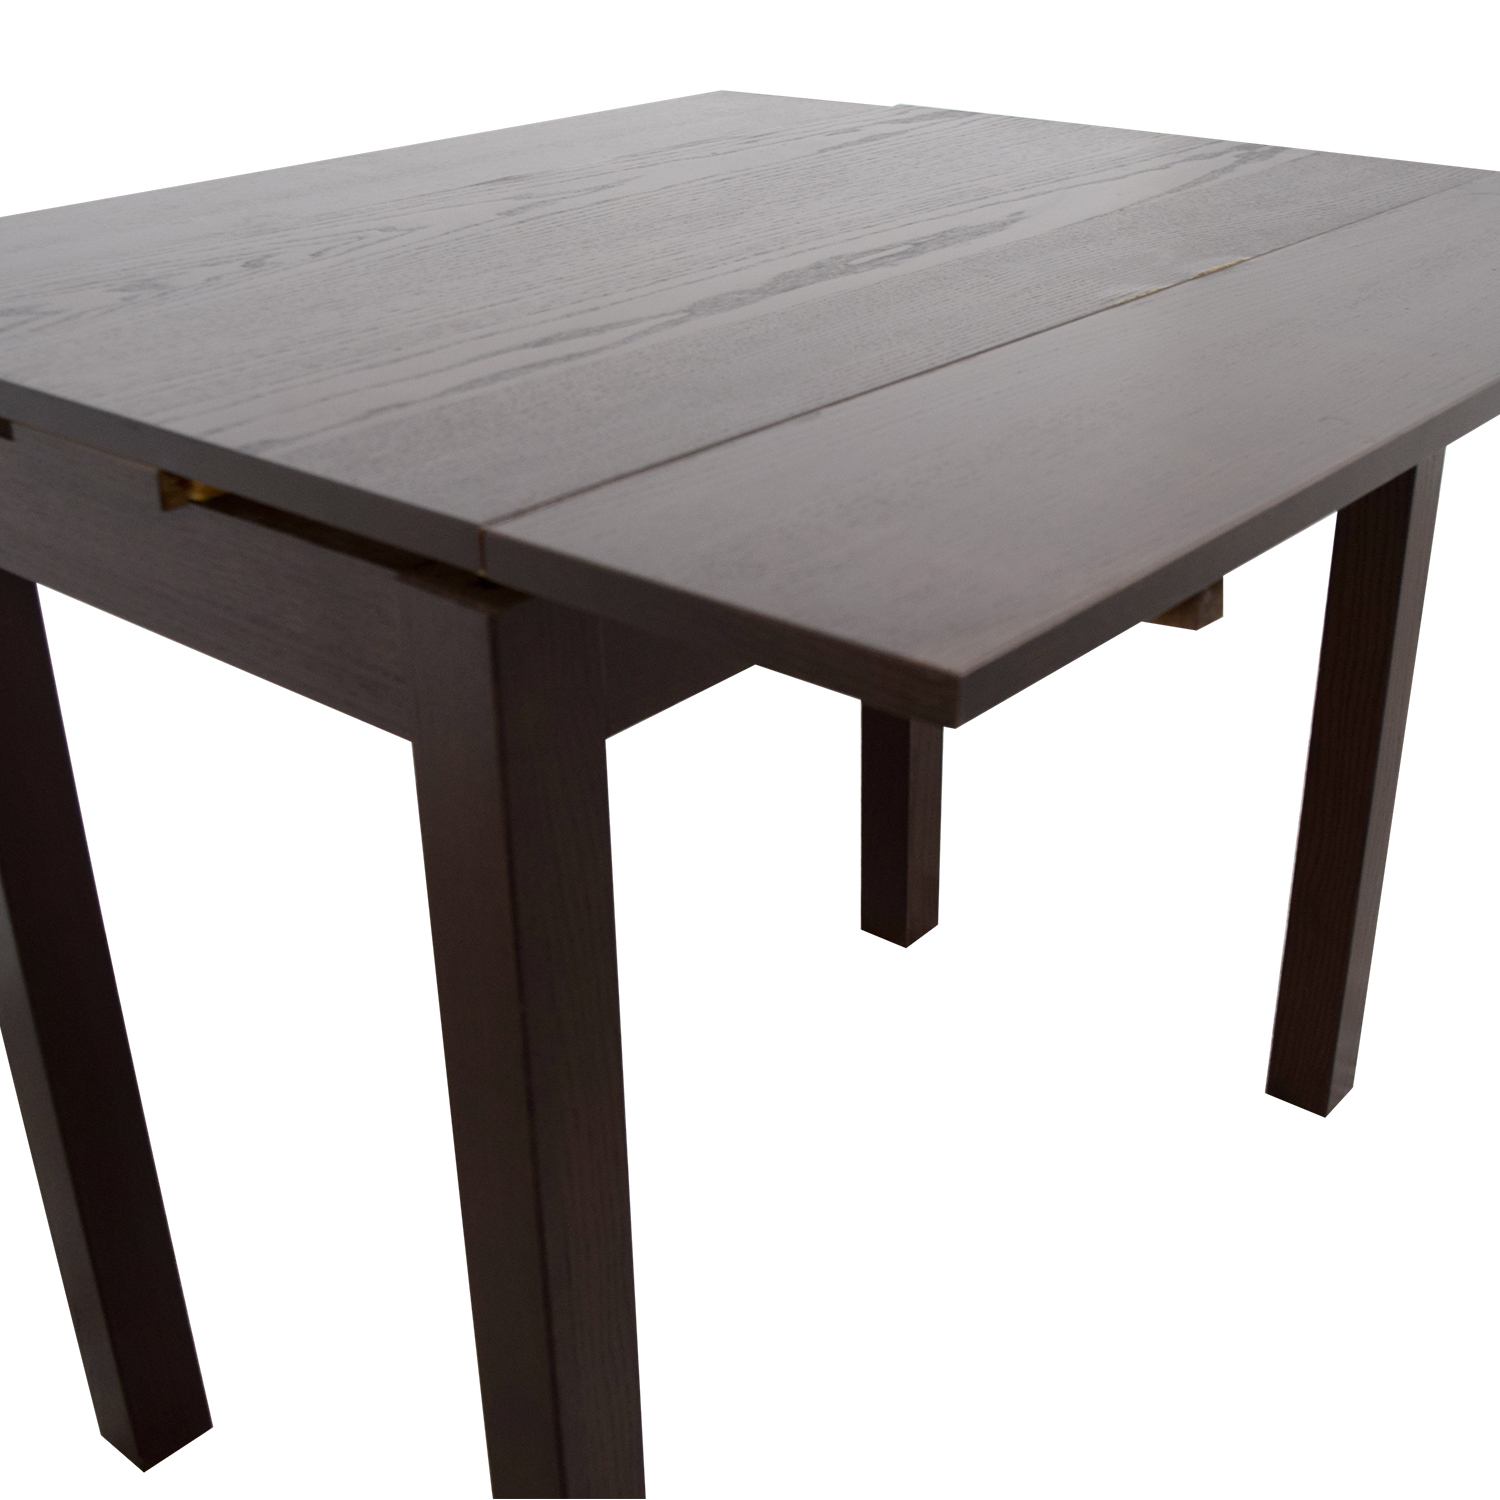 40% OFF IKEA IKEA Brown Wood Expandable Table Tables